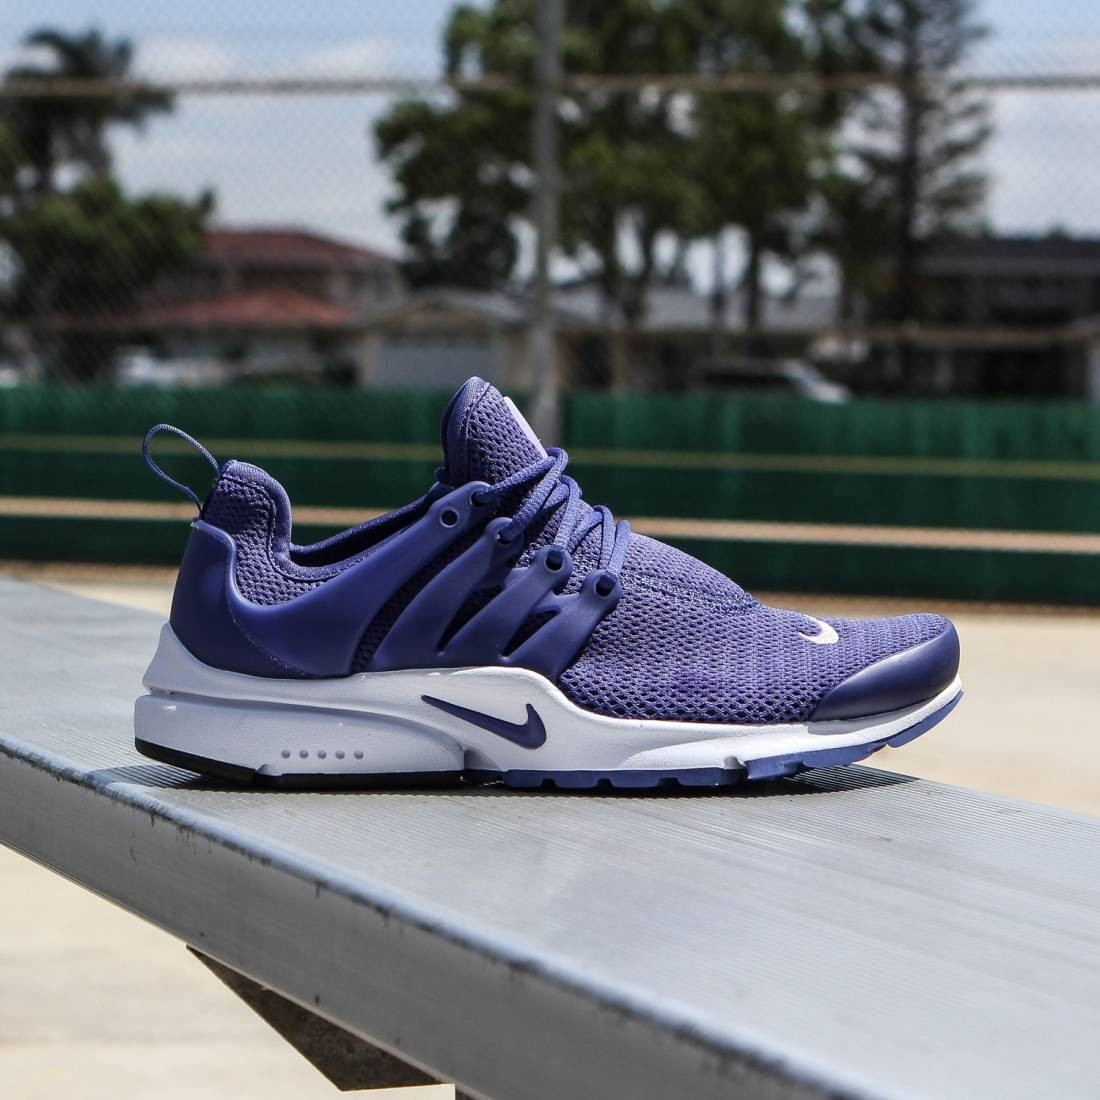 new styles 6c5b9 406ad Nike Women WMNS NIKE AIR PRESTO (dk purple dust/bleached lilac/white/dk  purple dust)